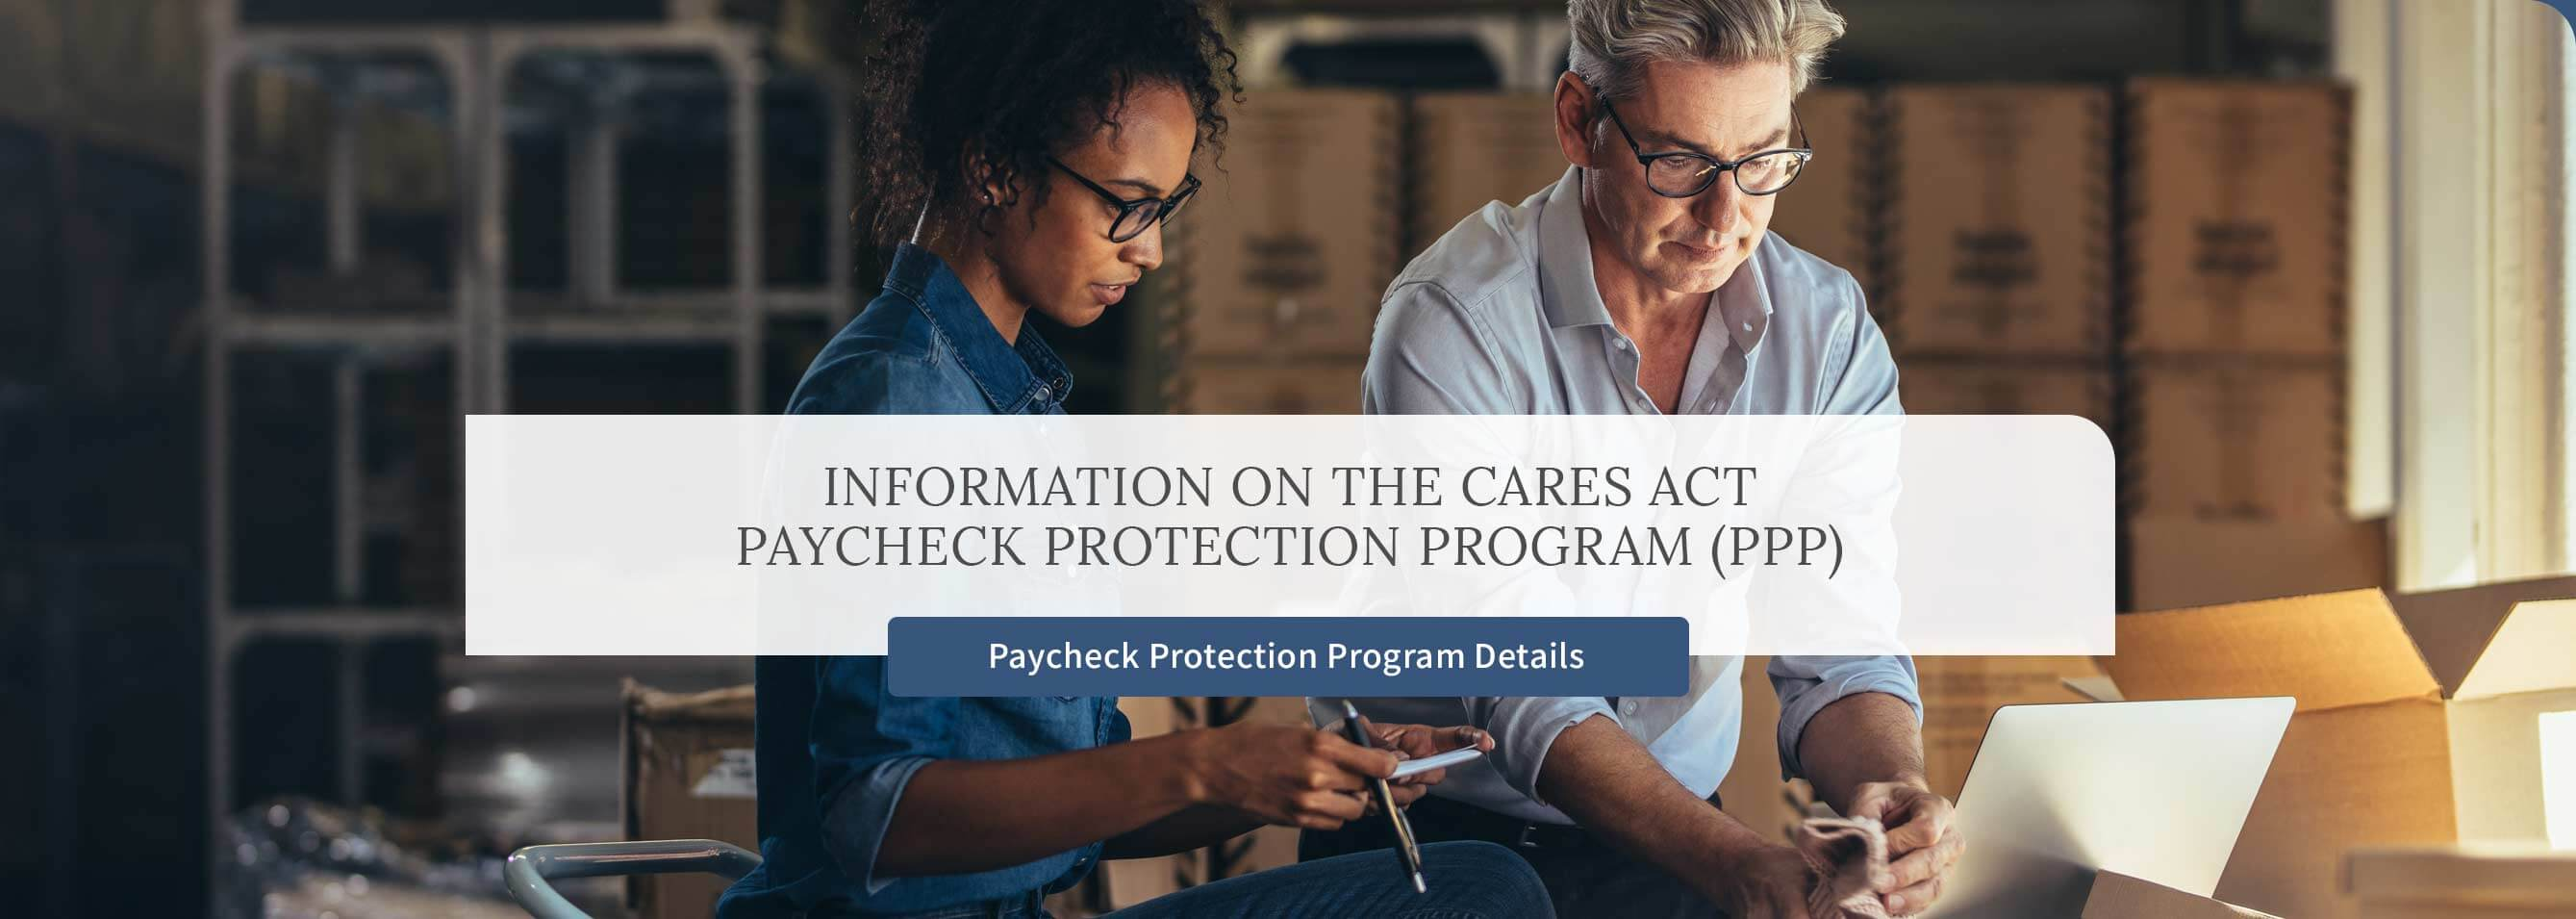 Information on the CARES Act Paycheck Protection Program (PPP)  Paycheck Protection Program Details